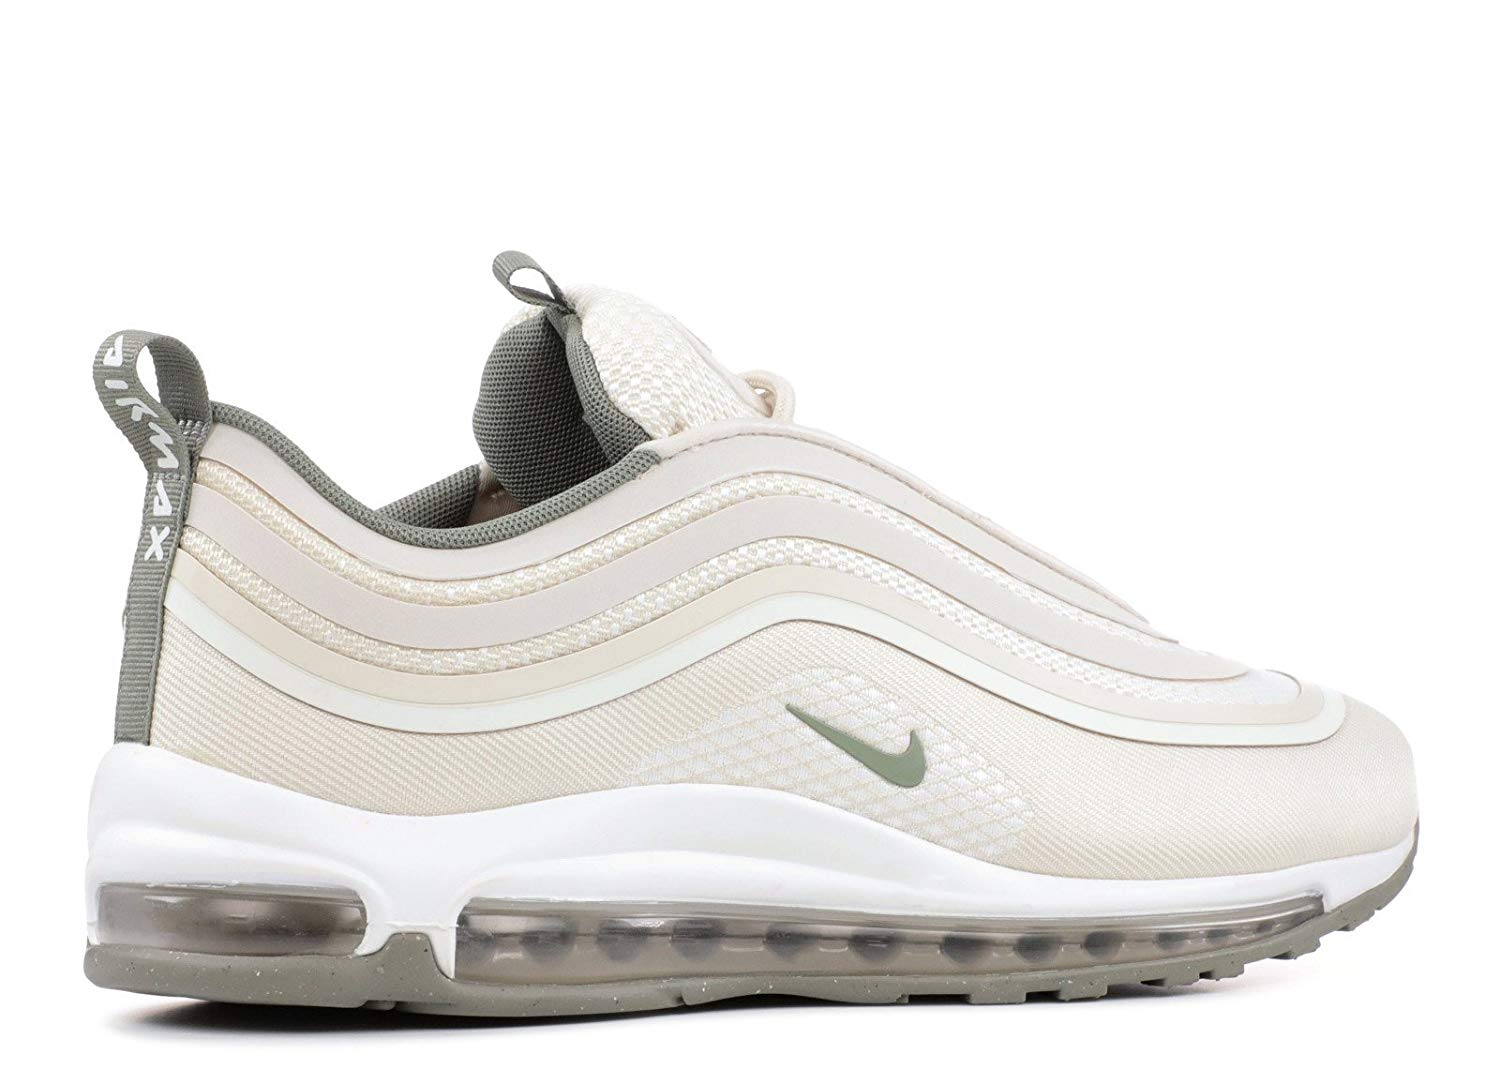 Details about Nike Womens Air Max 97 Ul 17 Low Top Lace Up Running Sneaker, Beige, Size 11.5